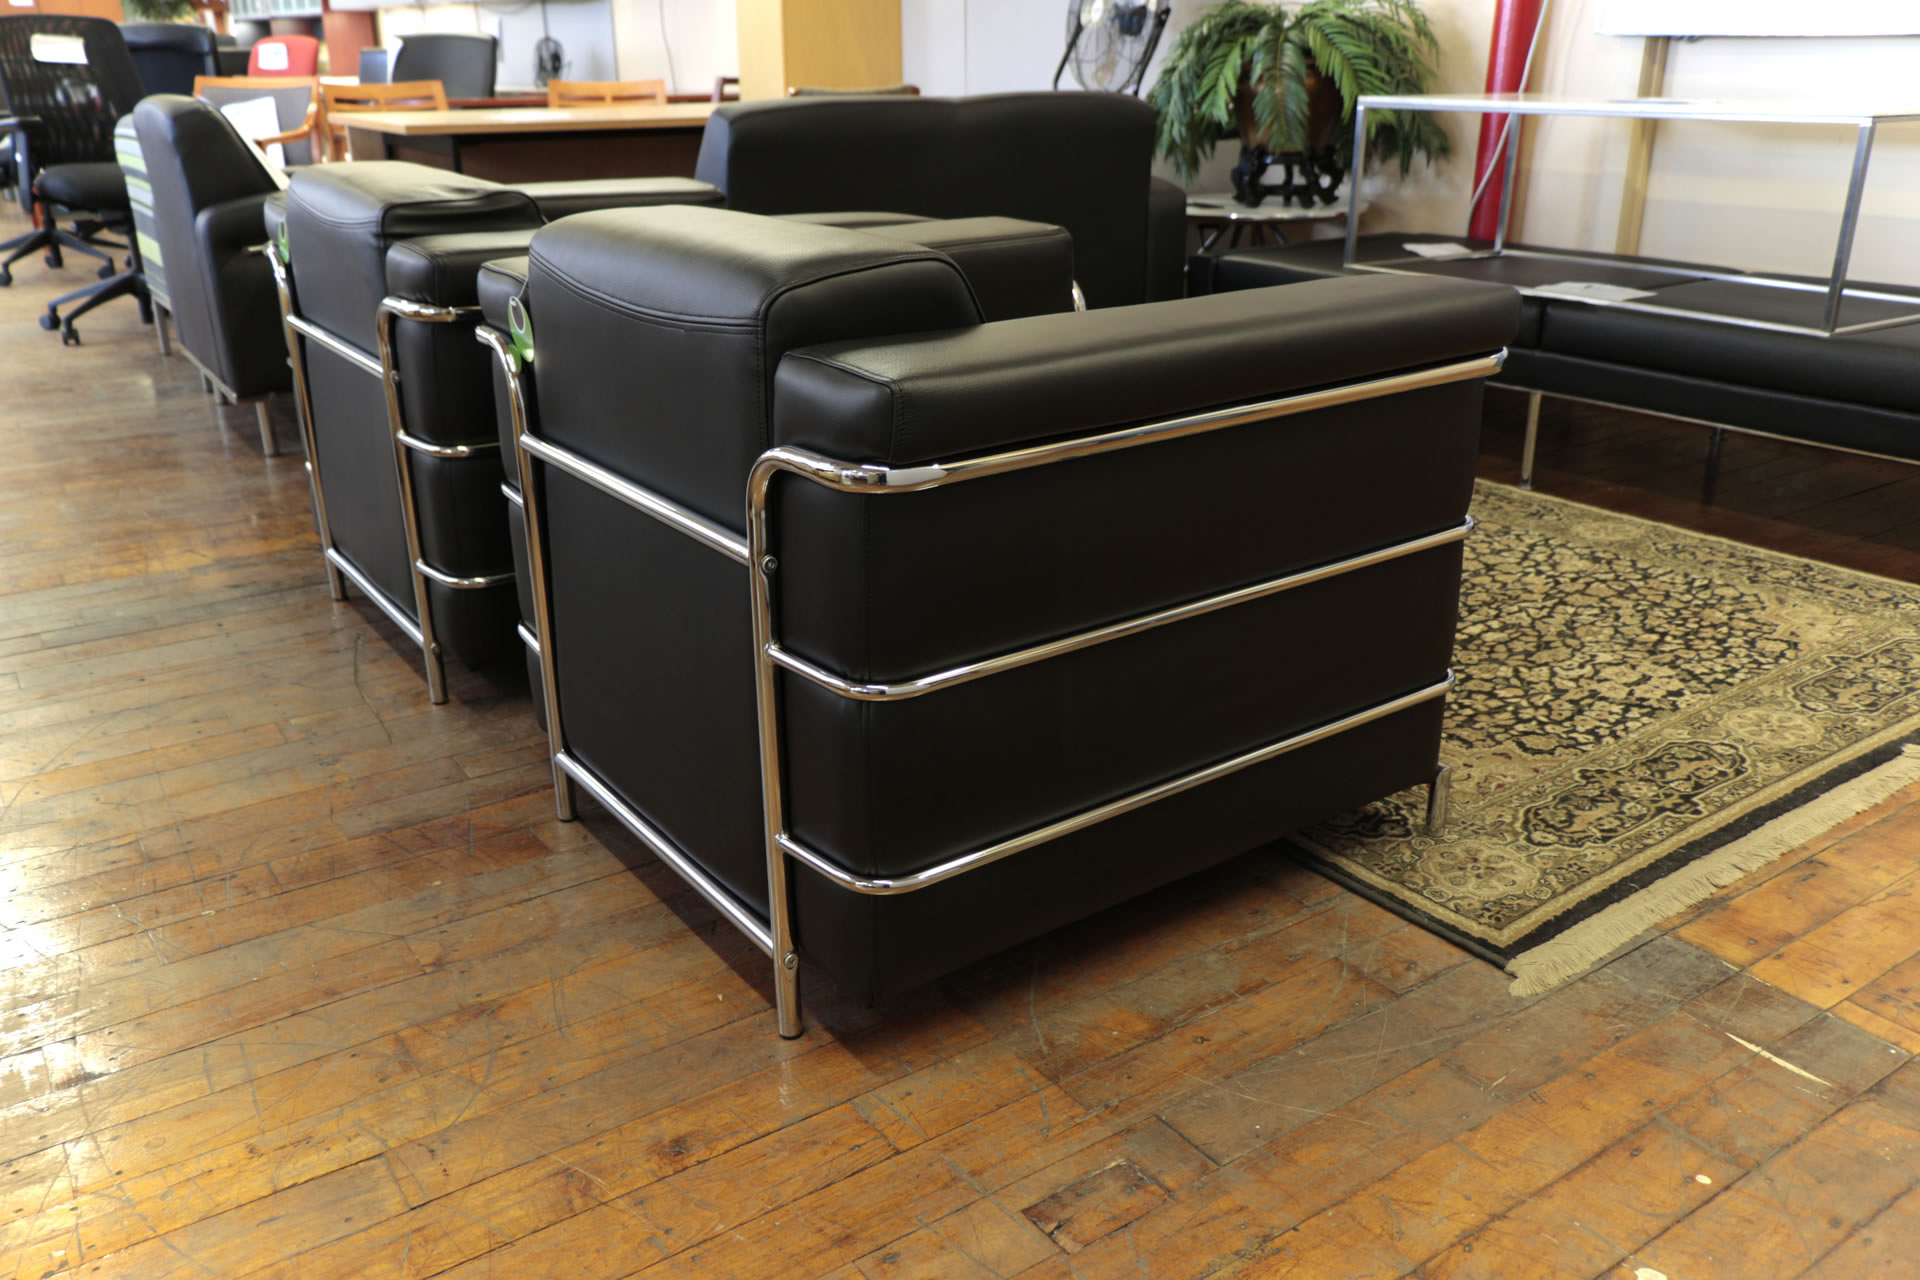 peartreeofficefurniture_peartreeofficefurniture_mg_4879.jpg